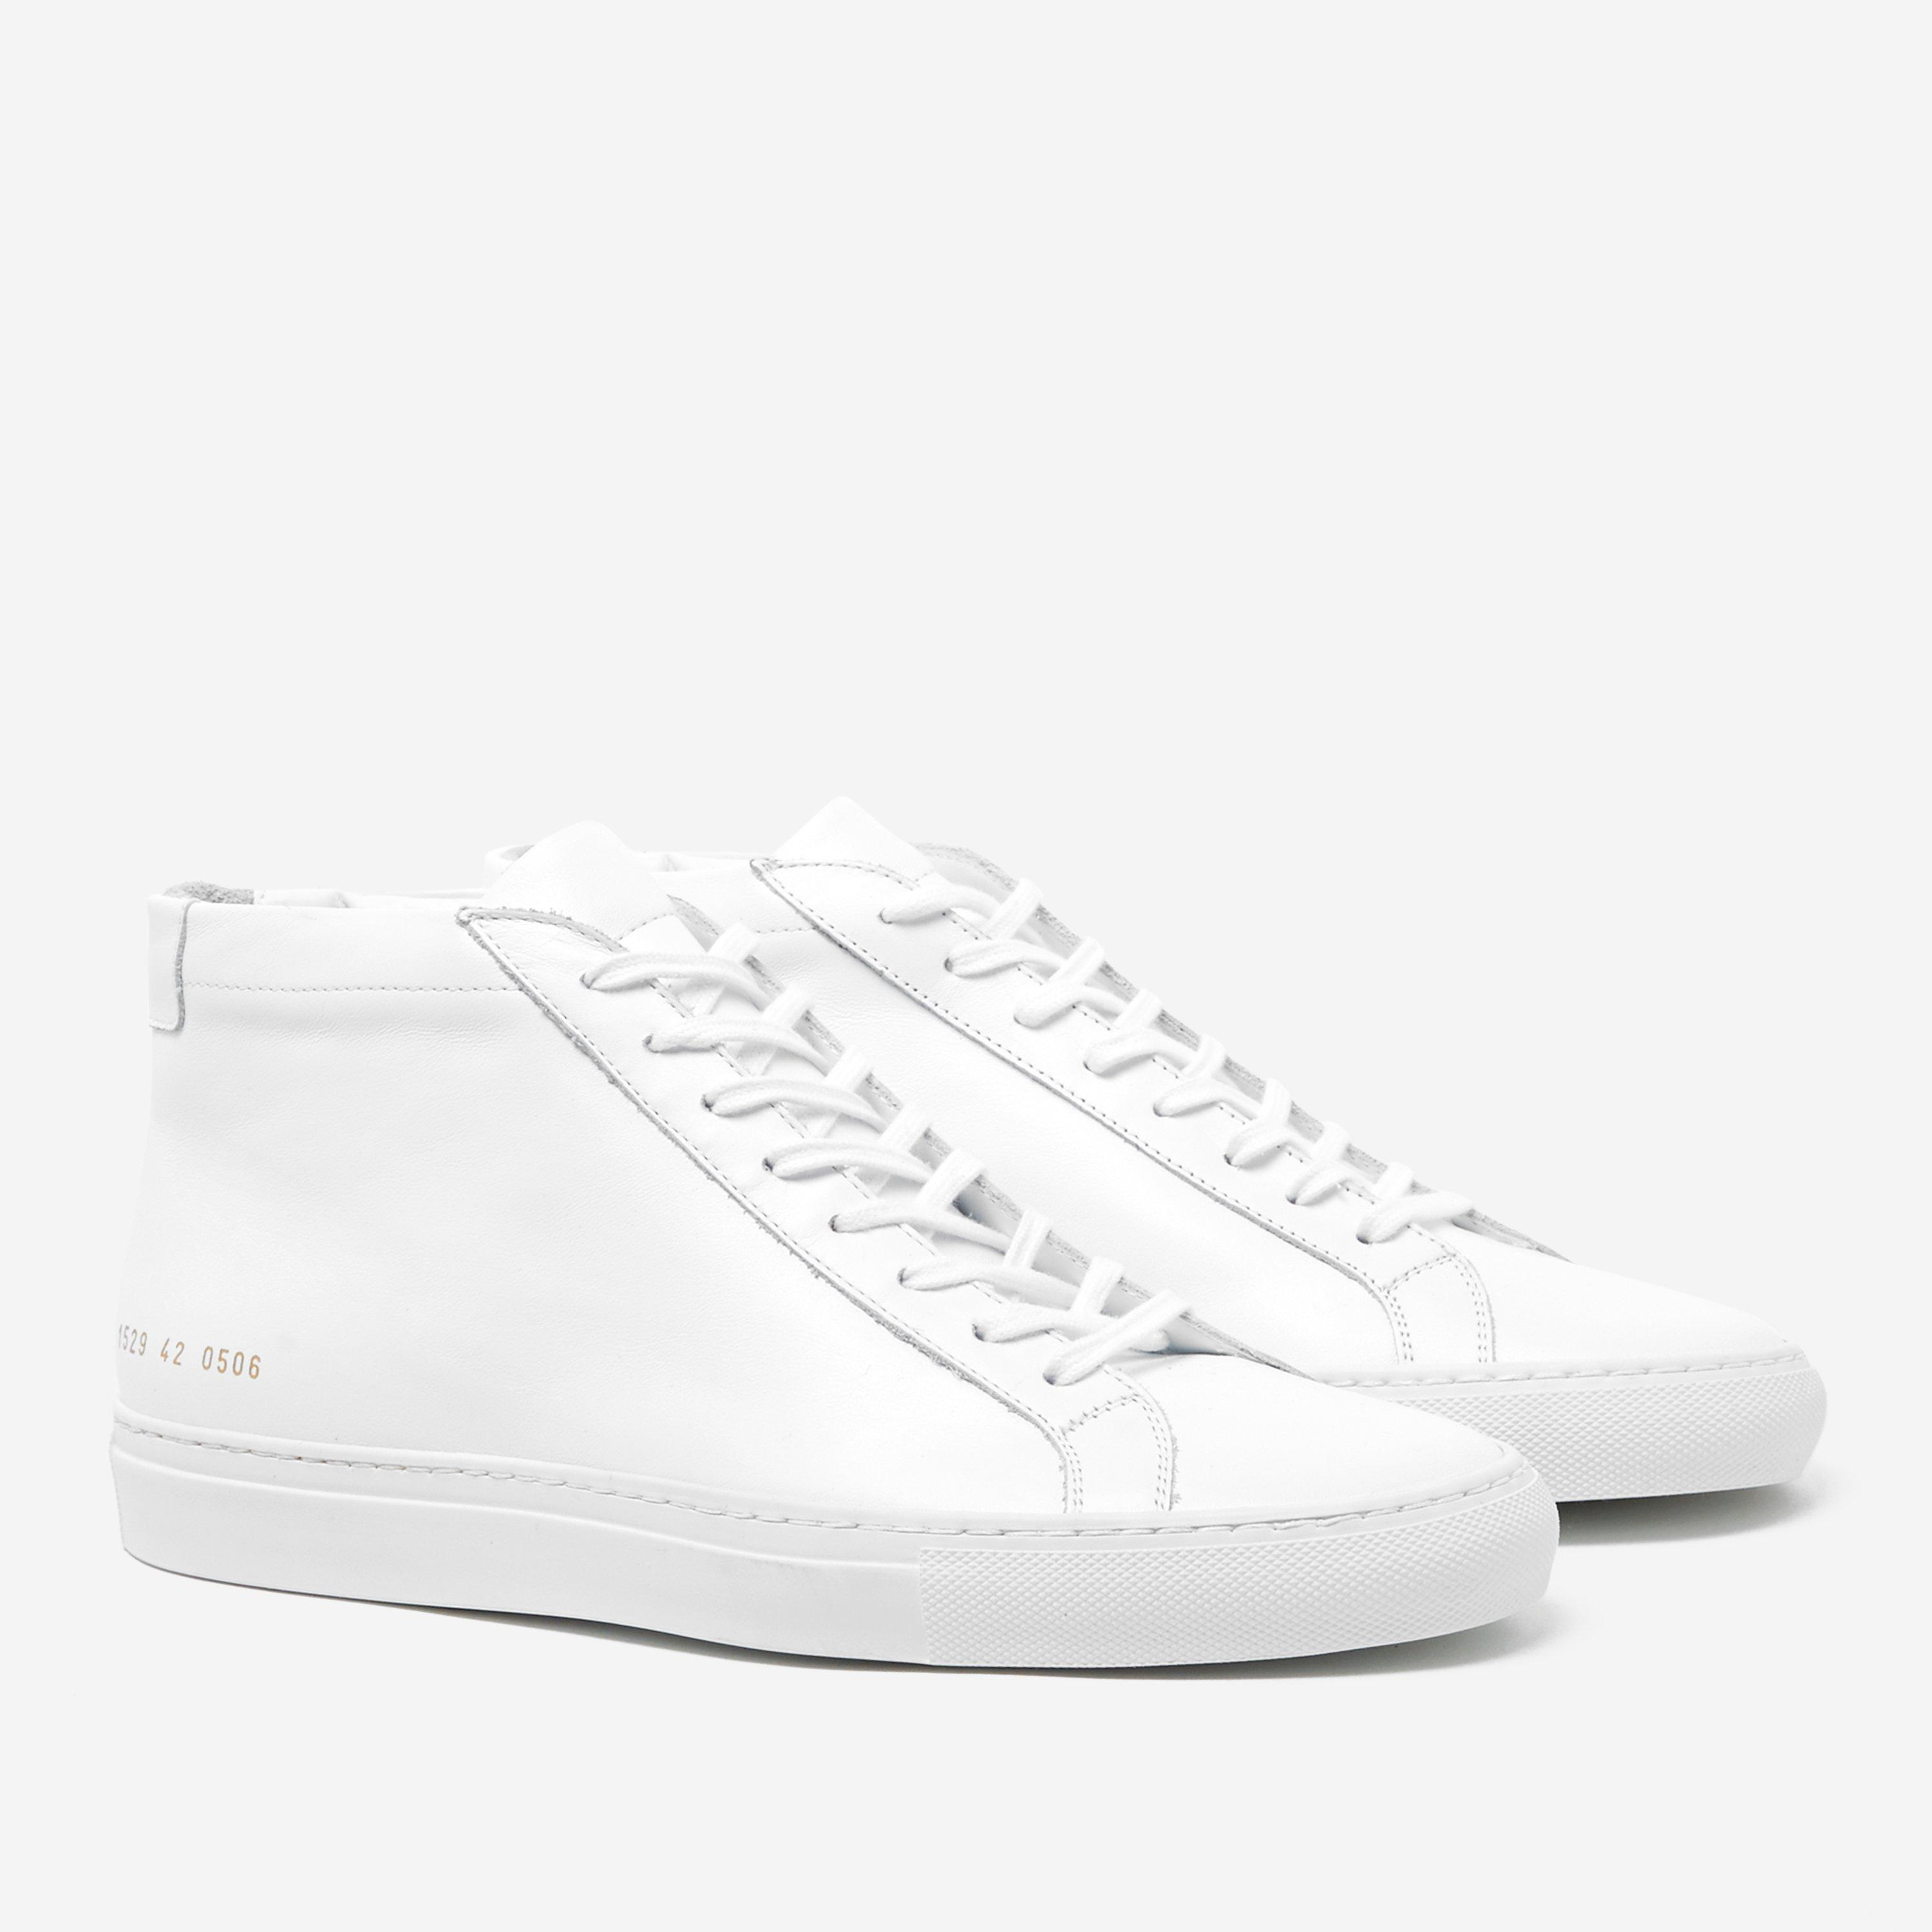 Common Projects Original Achilles Mid 1529